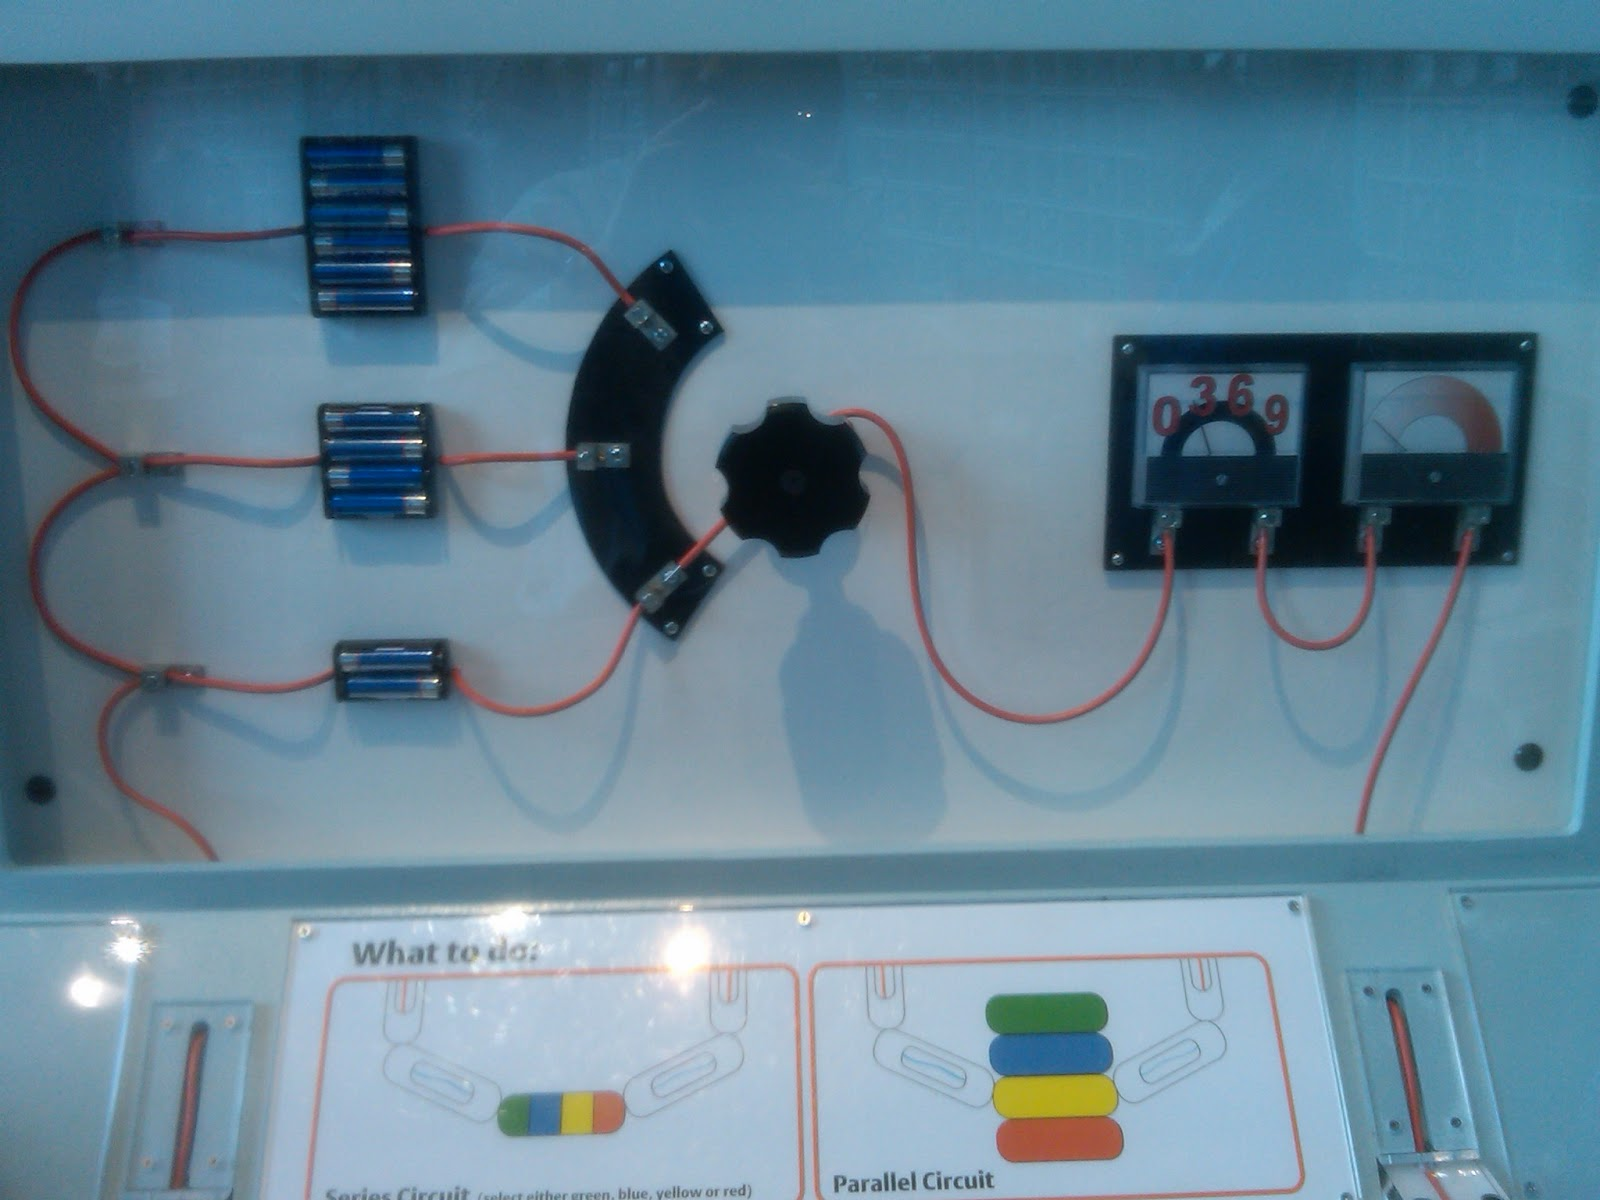 EE Proto: Voltmeter wiring error at the Museum of Science